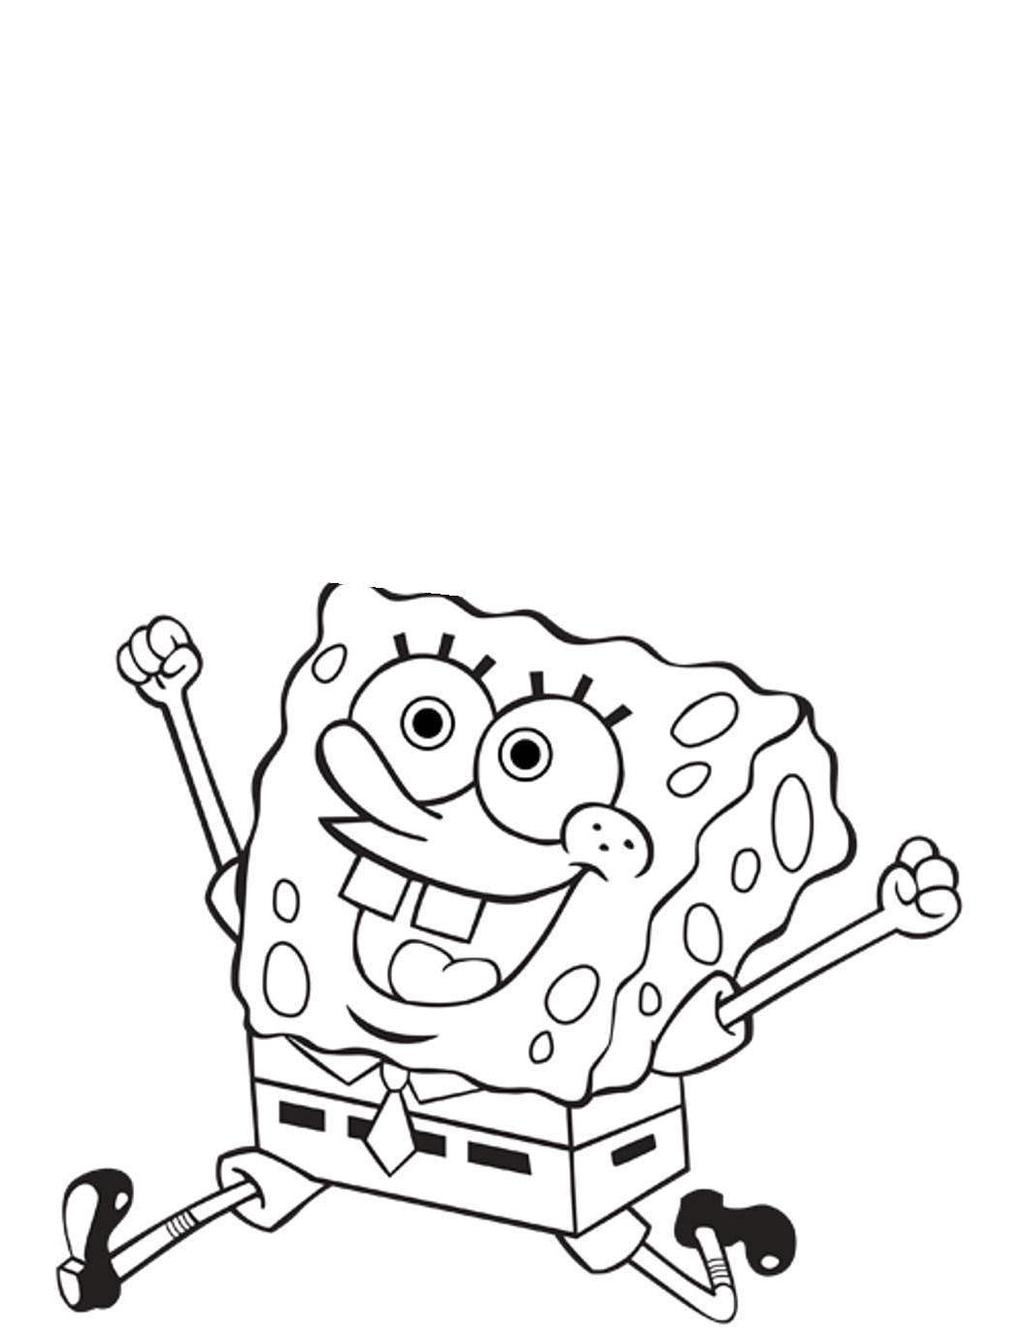 Nickelodeon Coloring Pages Fun Spongebob Hand Drawing Free